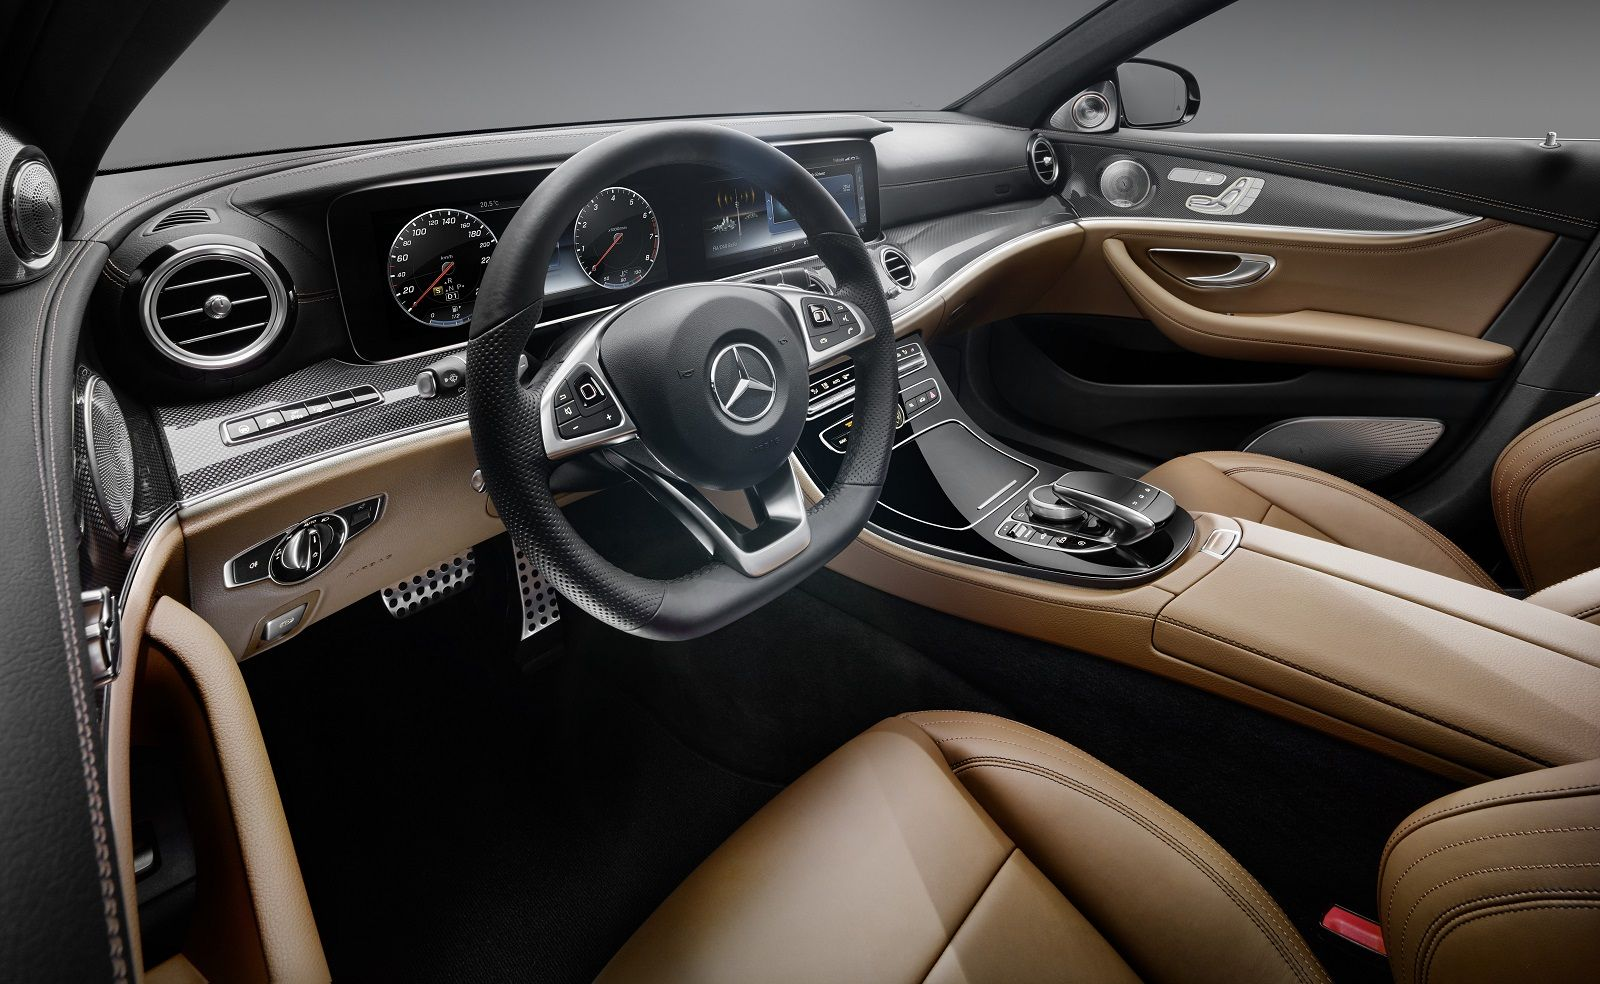 2017 Mercedes Benz E Class Interior Revealed All Glass Dash